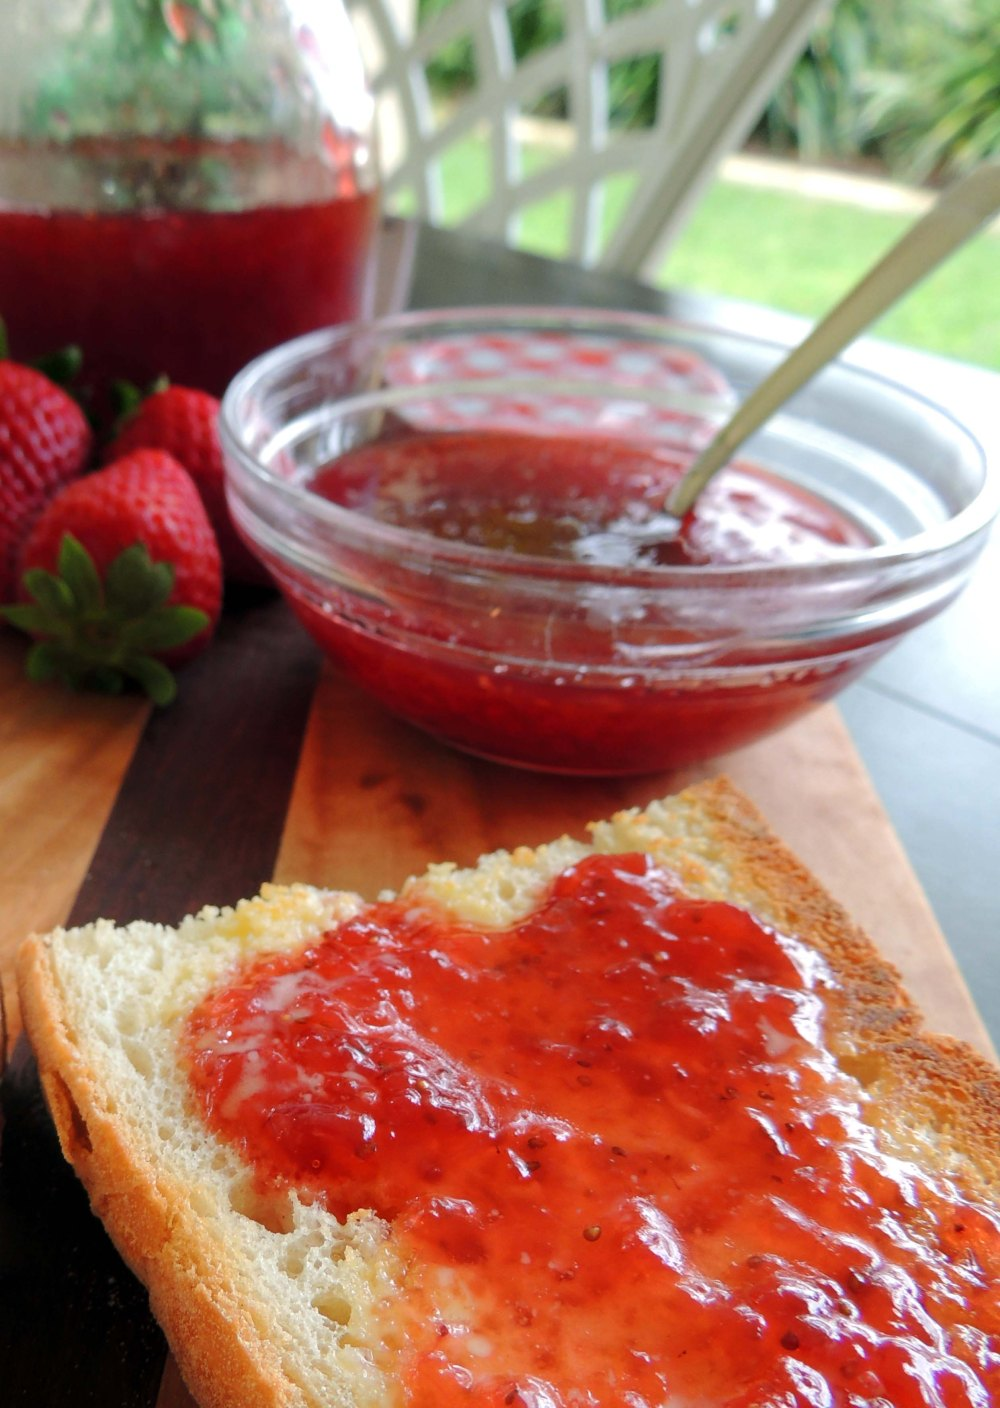 Homemade delicious strawberry jam